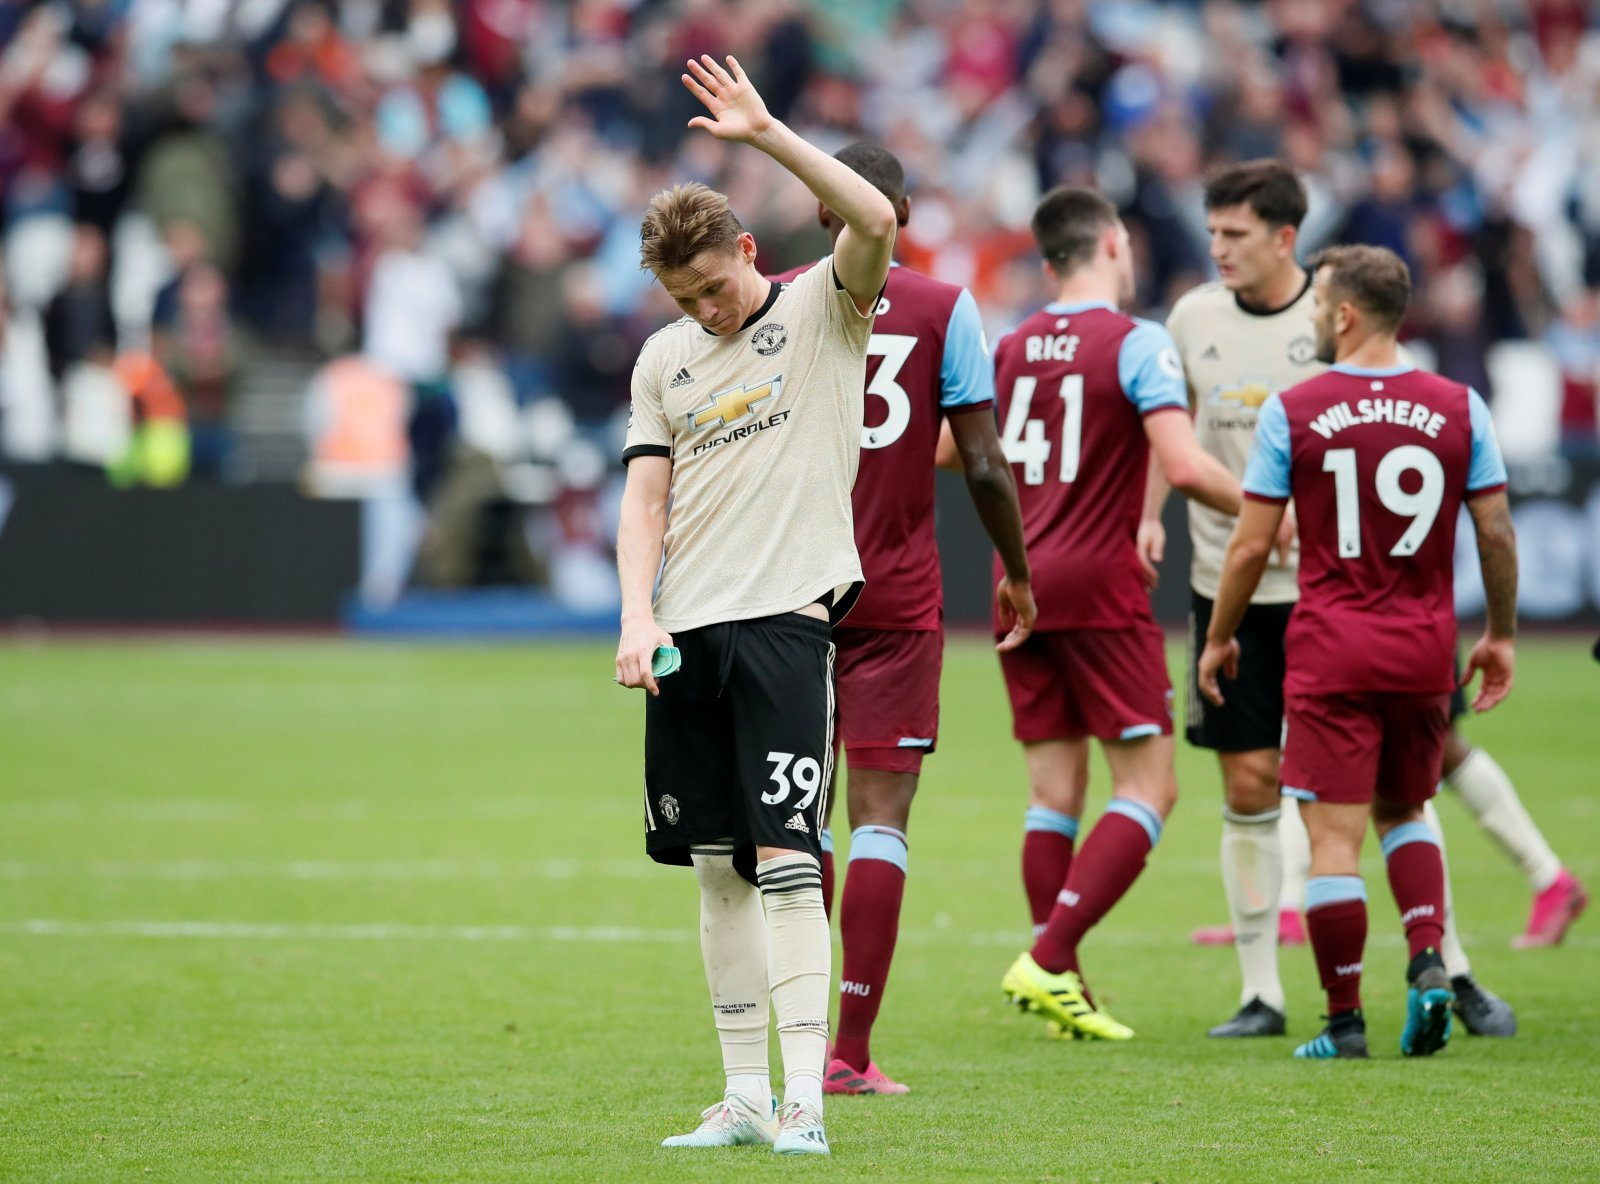 Manchester United: Fans react as Mourinho praises 'dominant' McTominay